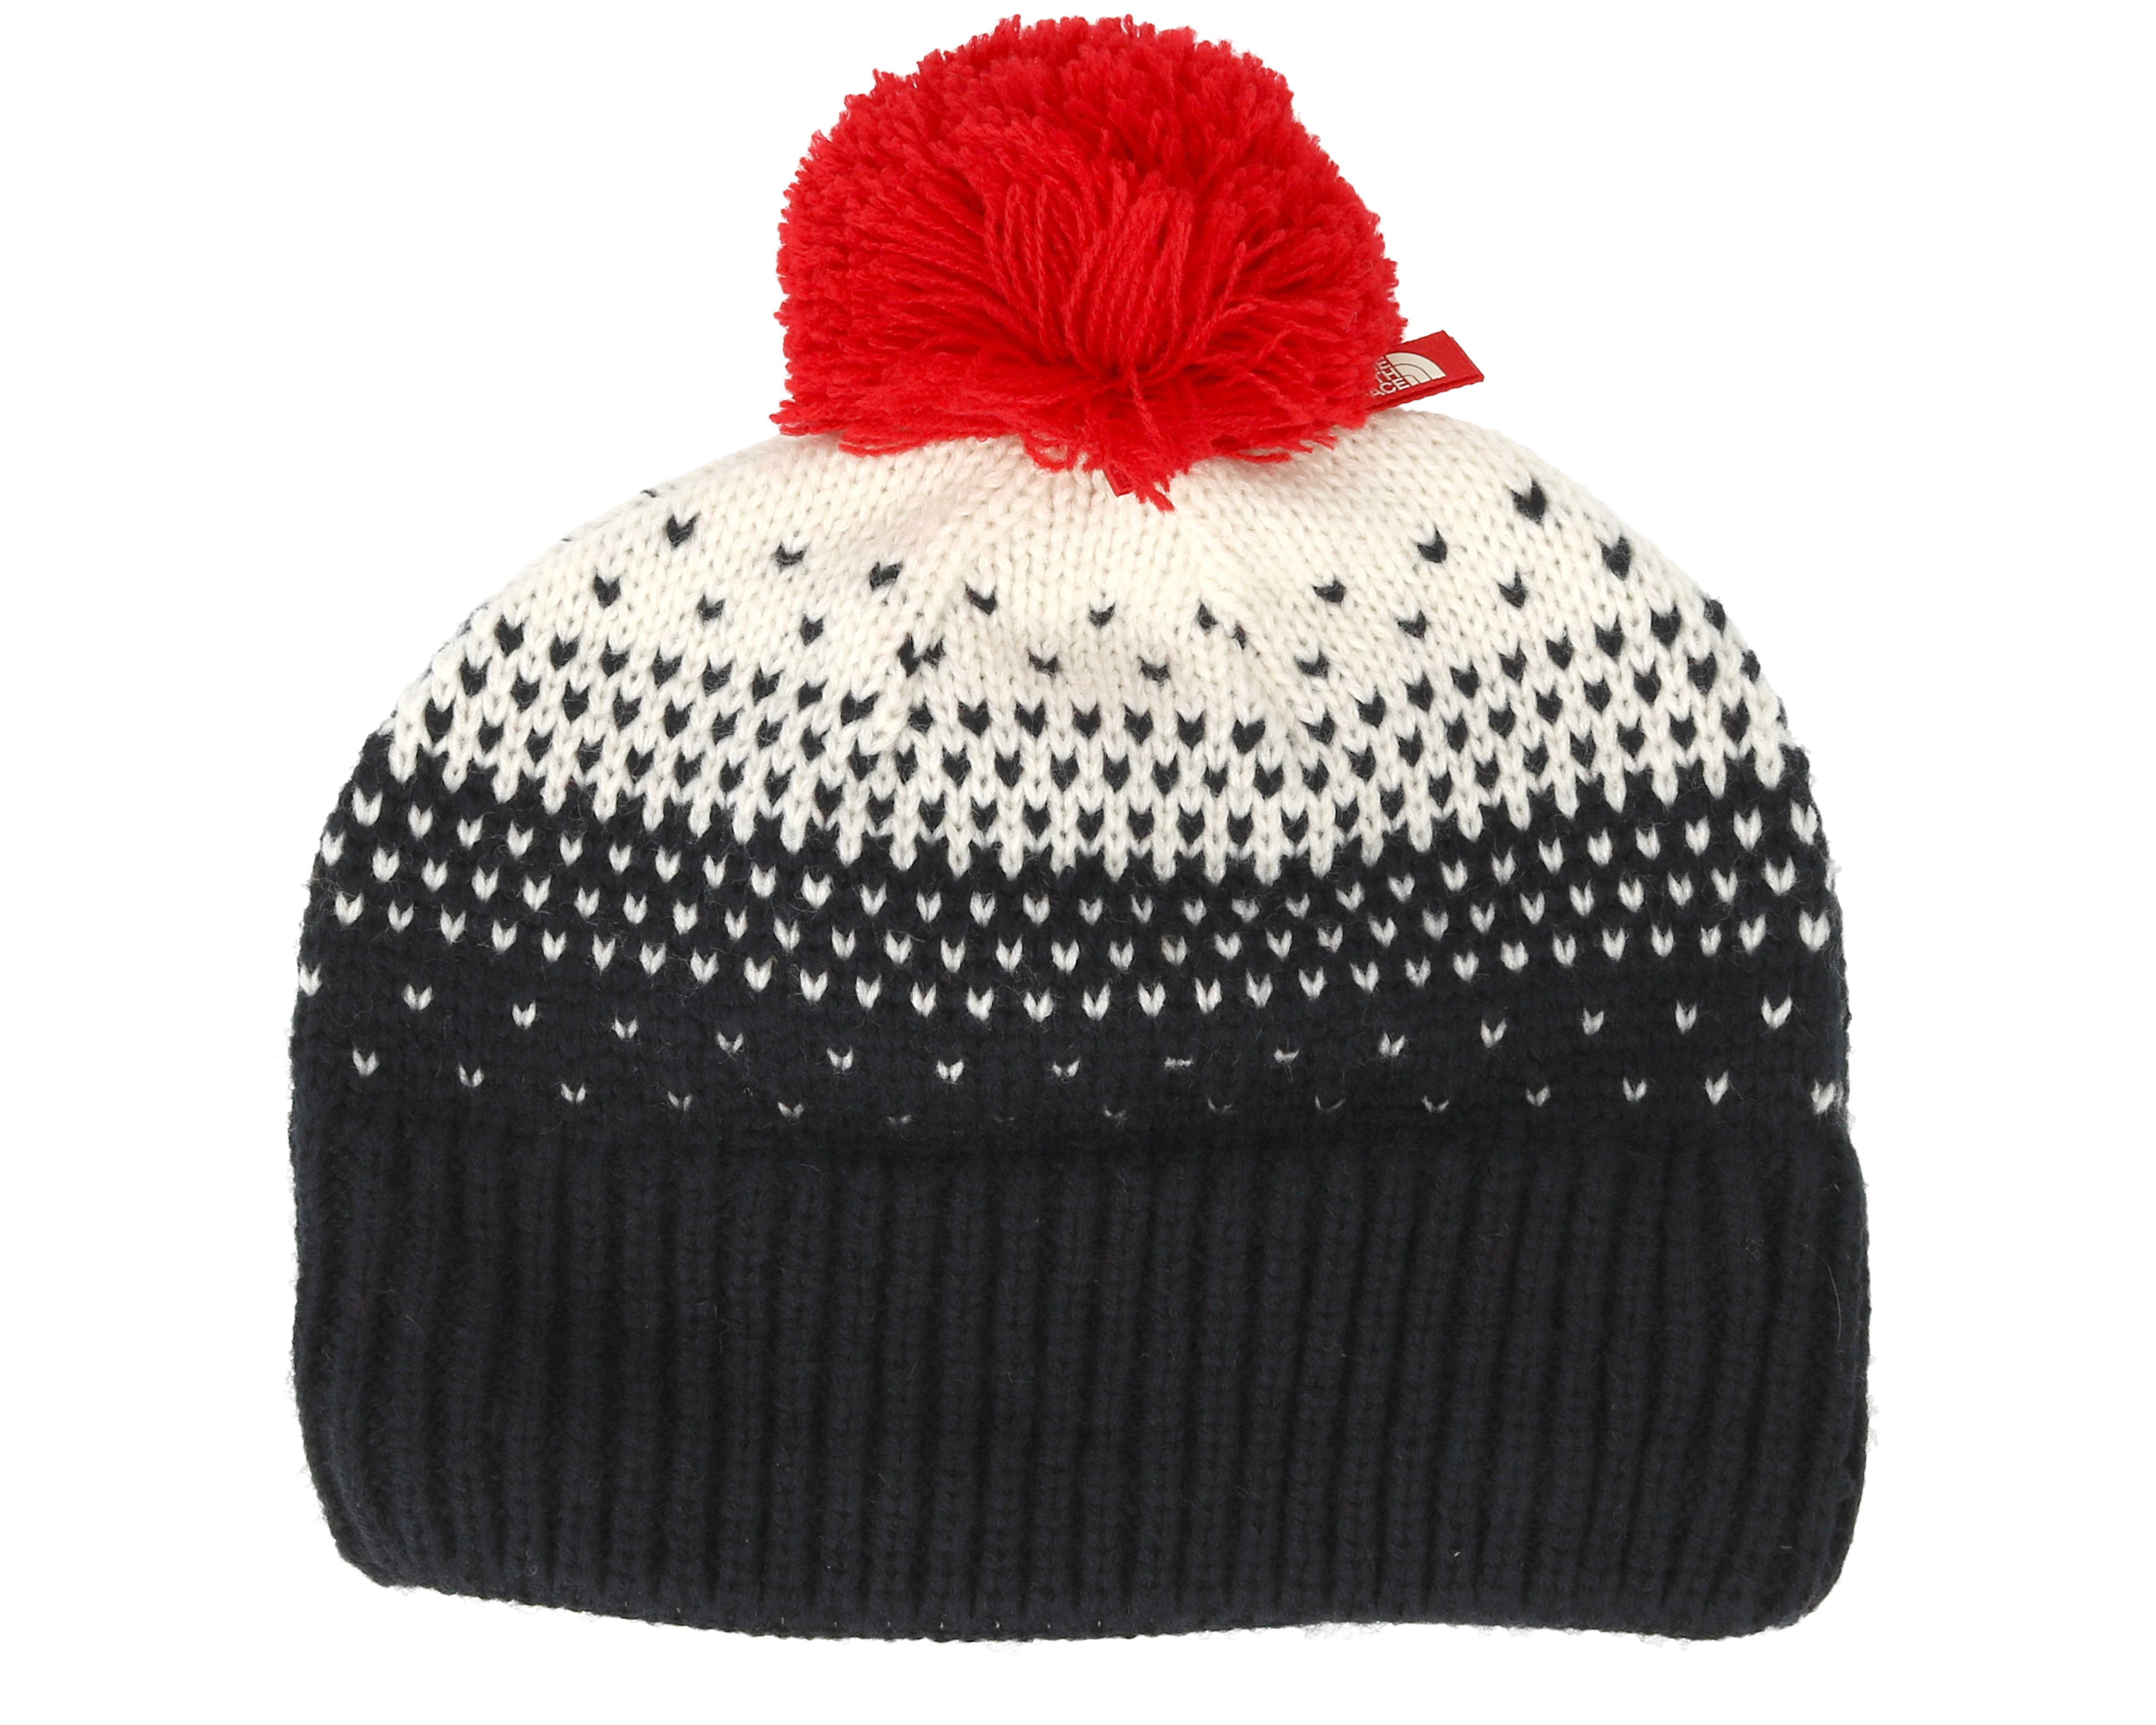 Youth Cosmic Blue Beanie - The North Face - bonnet   Hatstore.fr 15fce83454d